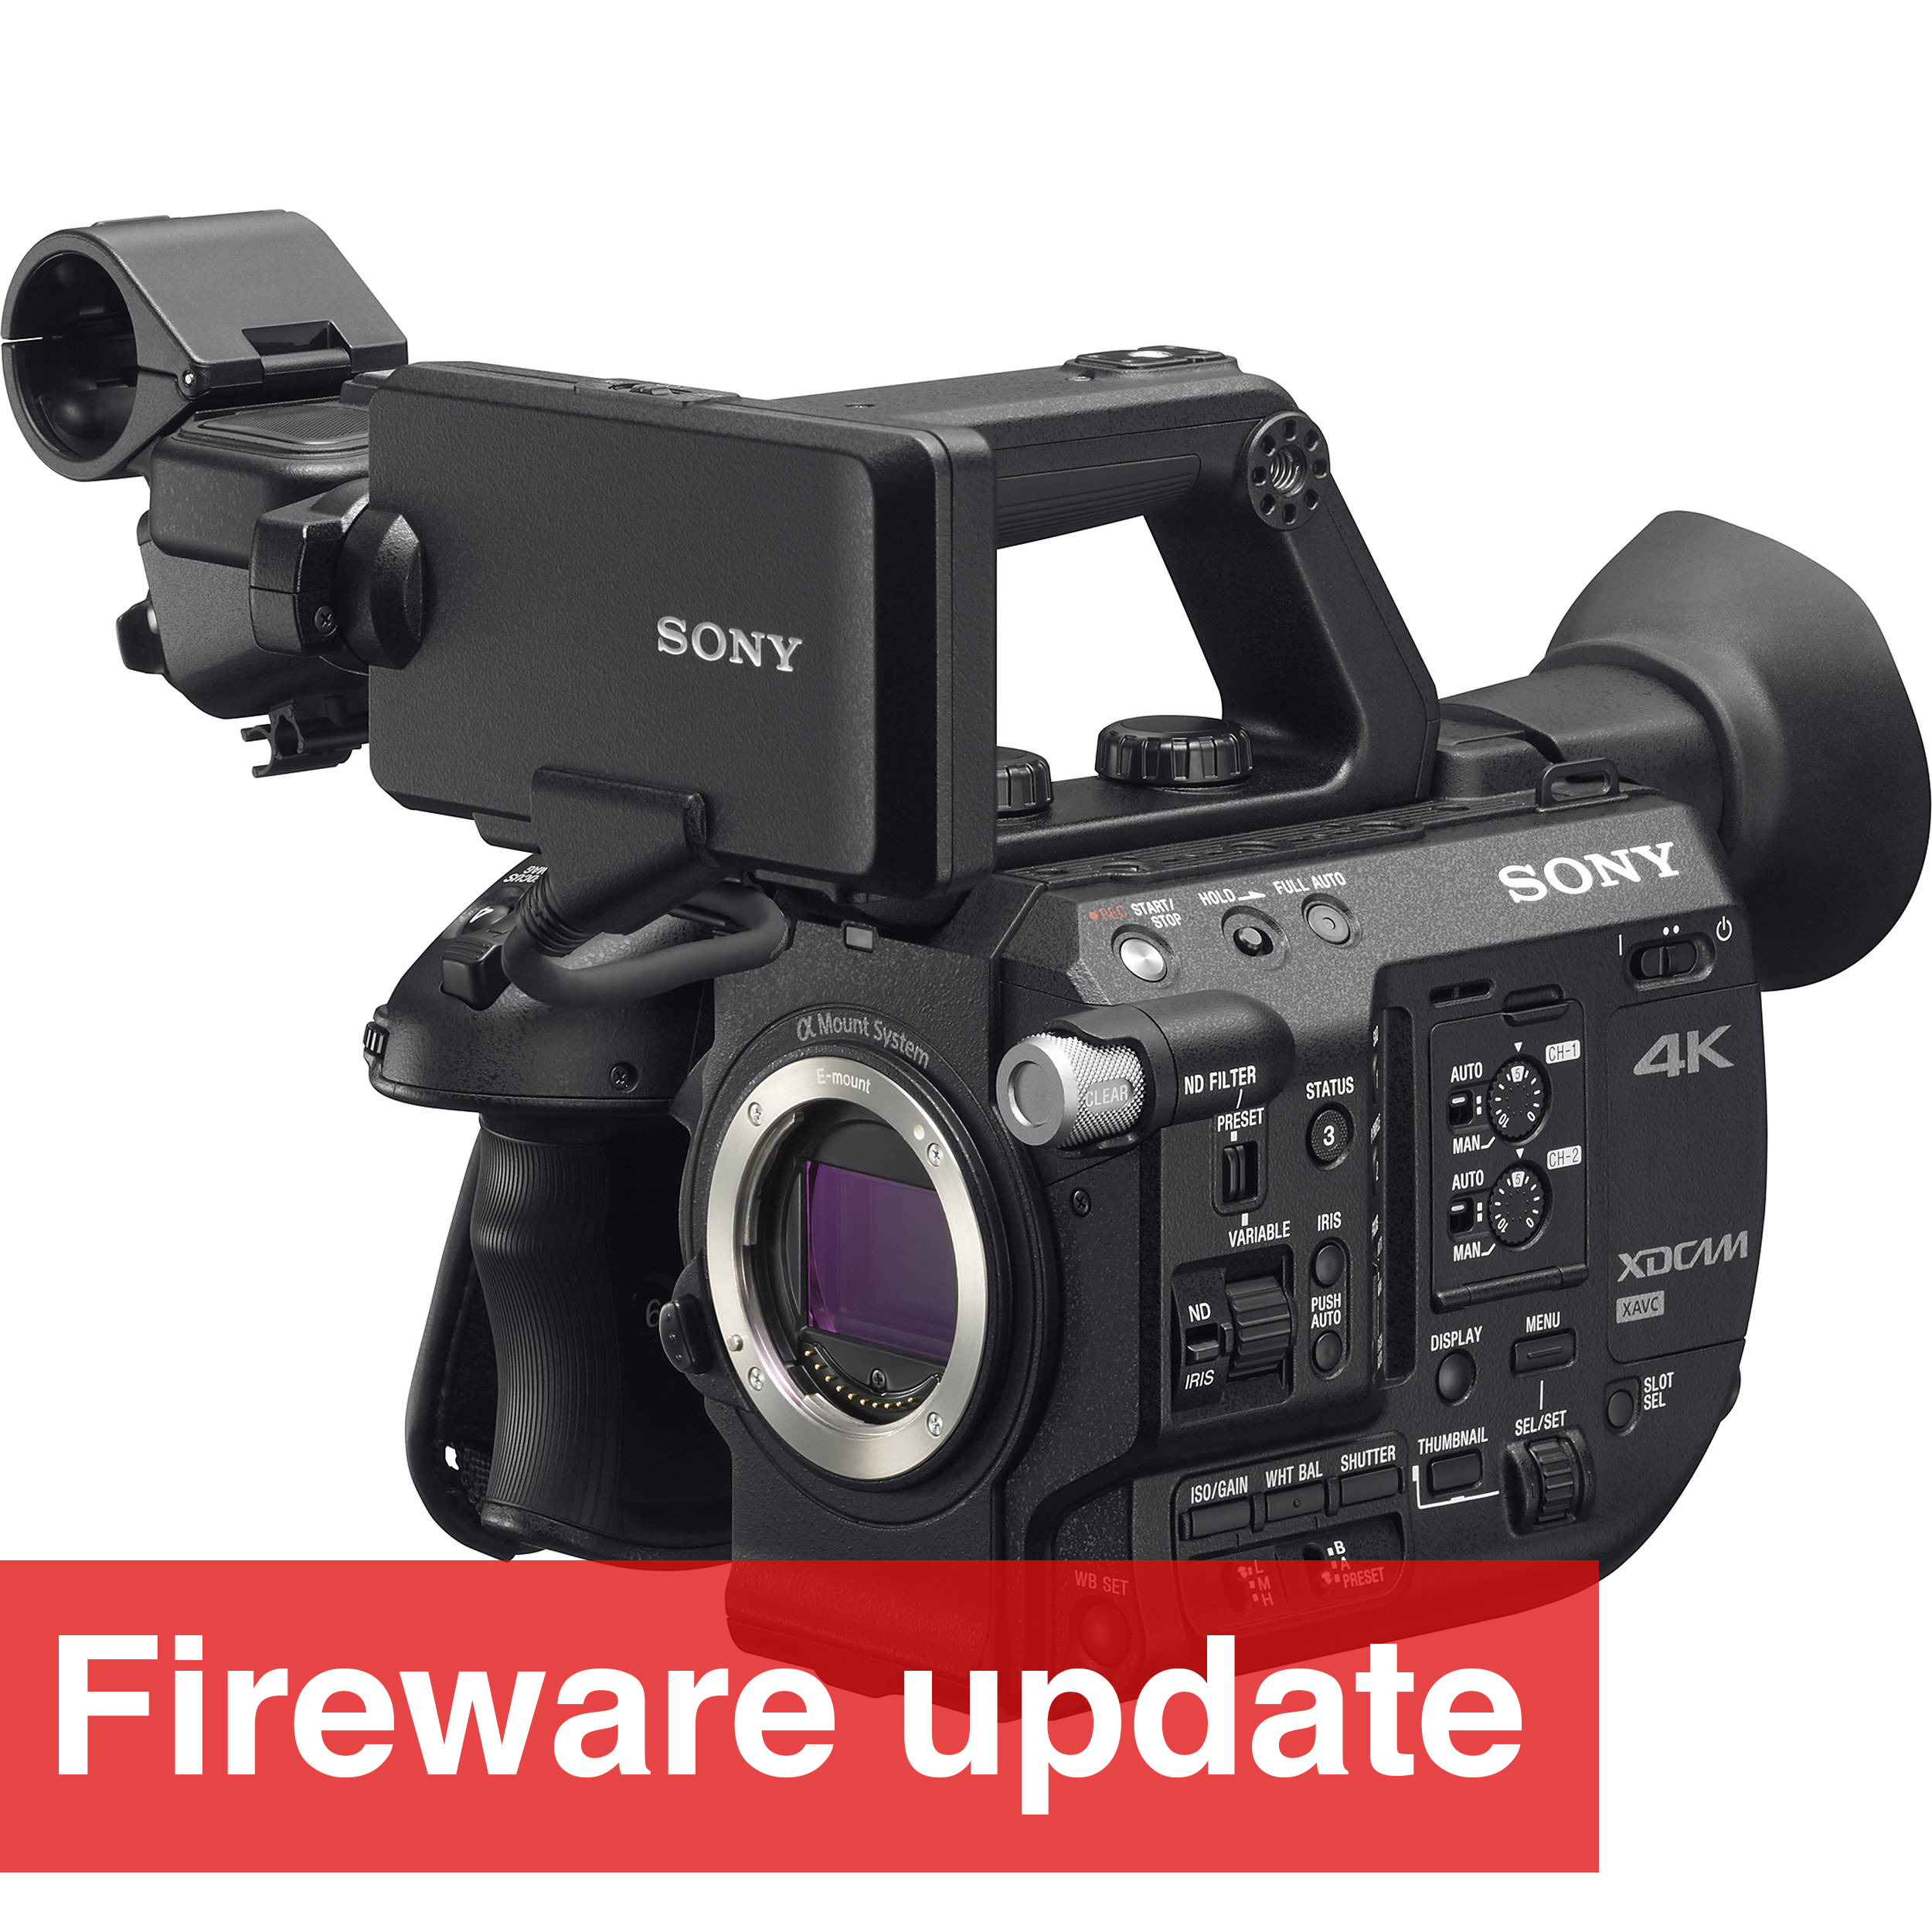 Sony release firmware version 4.02 for the FS5